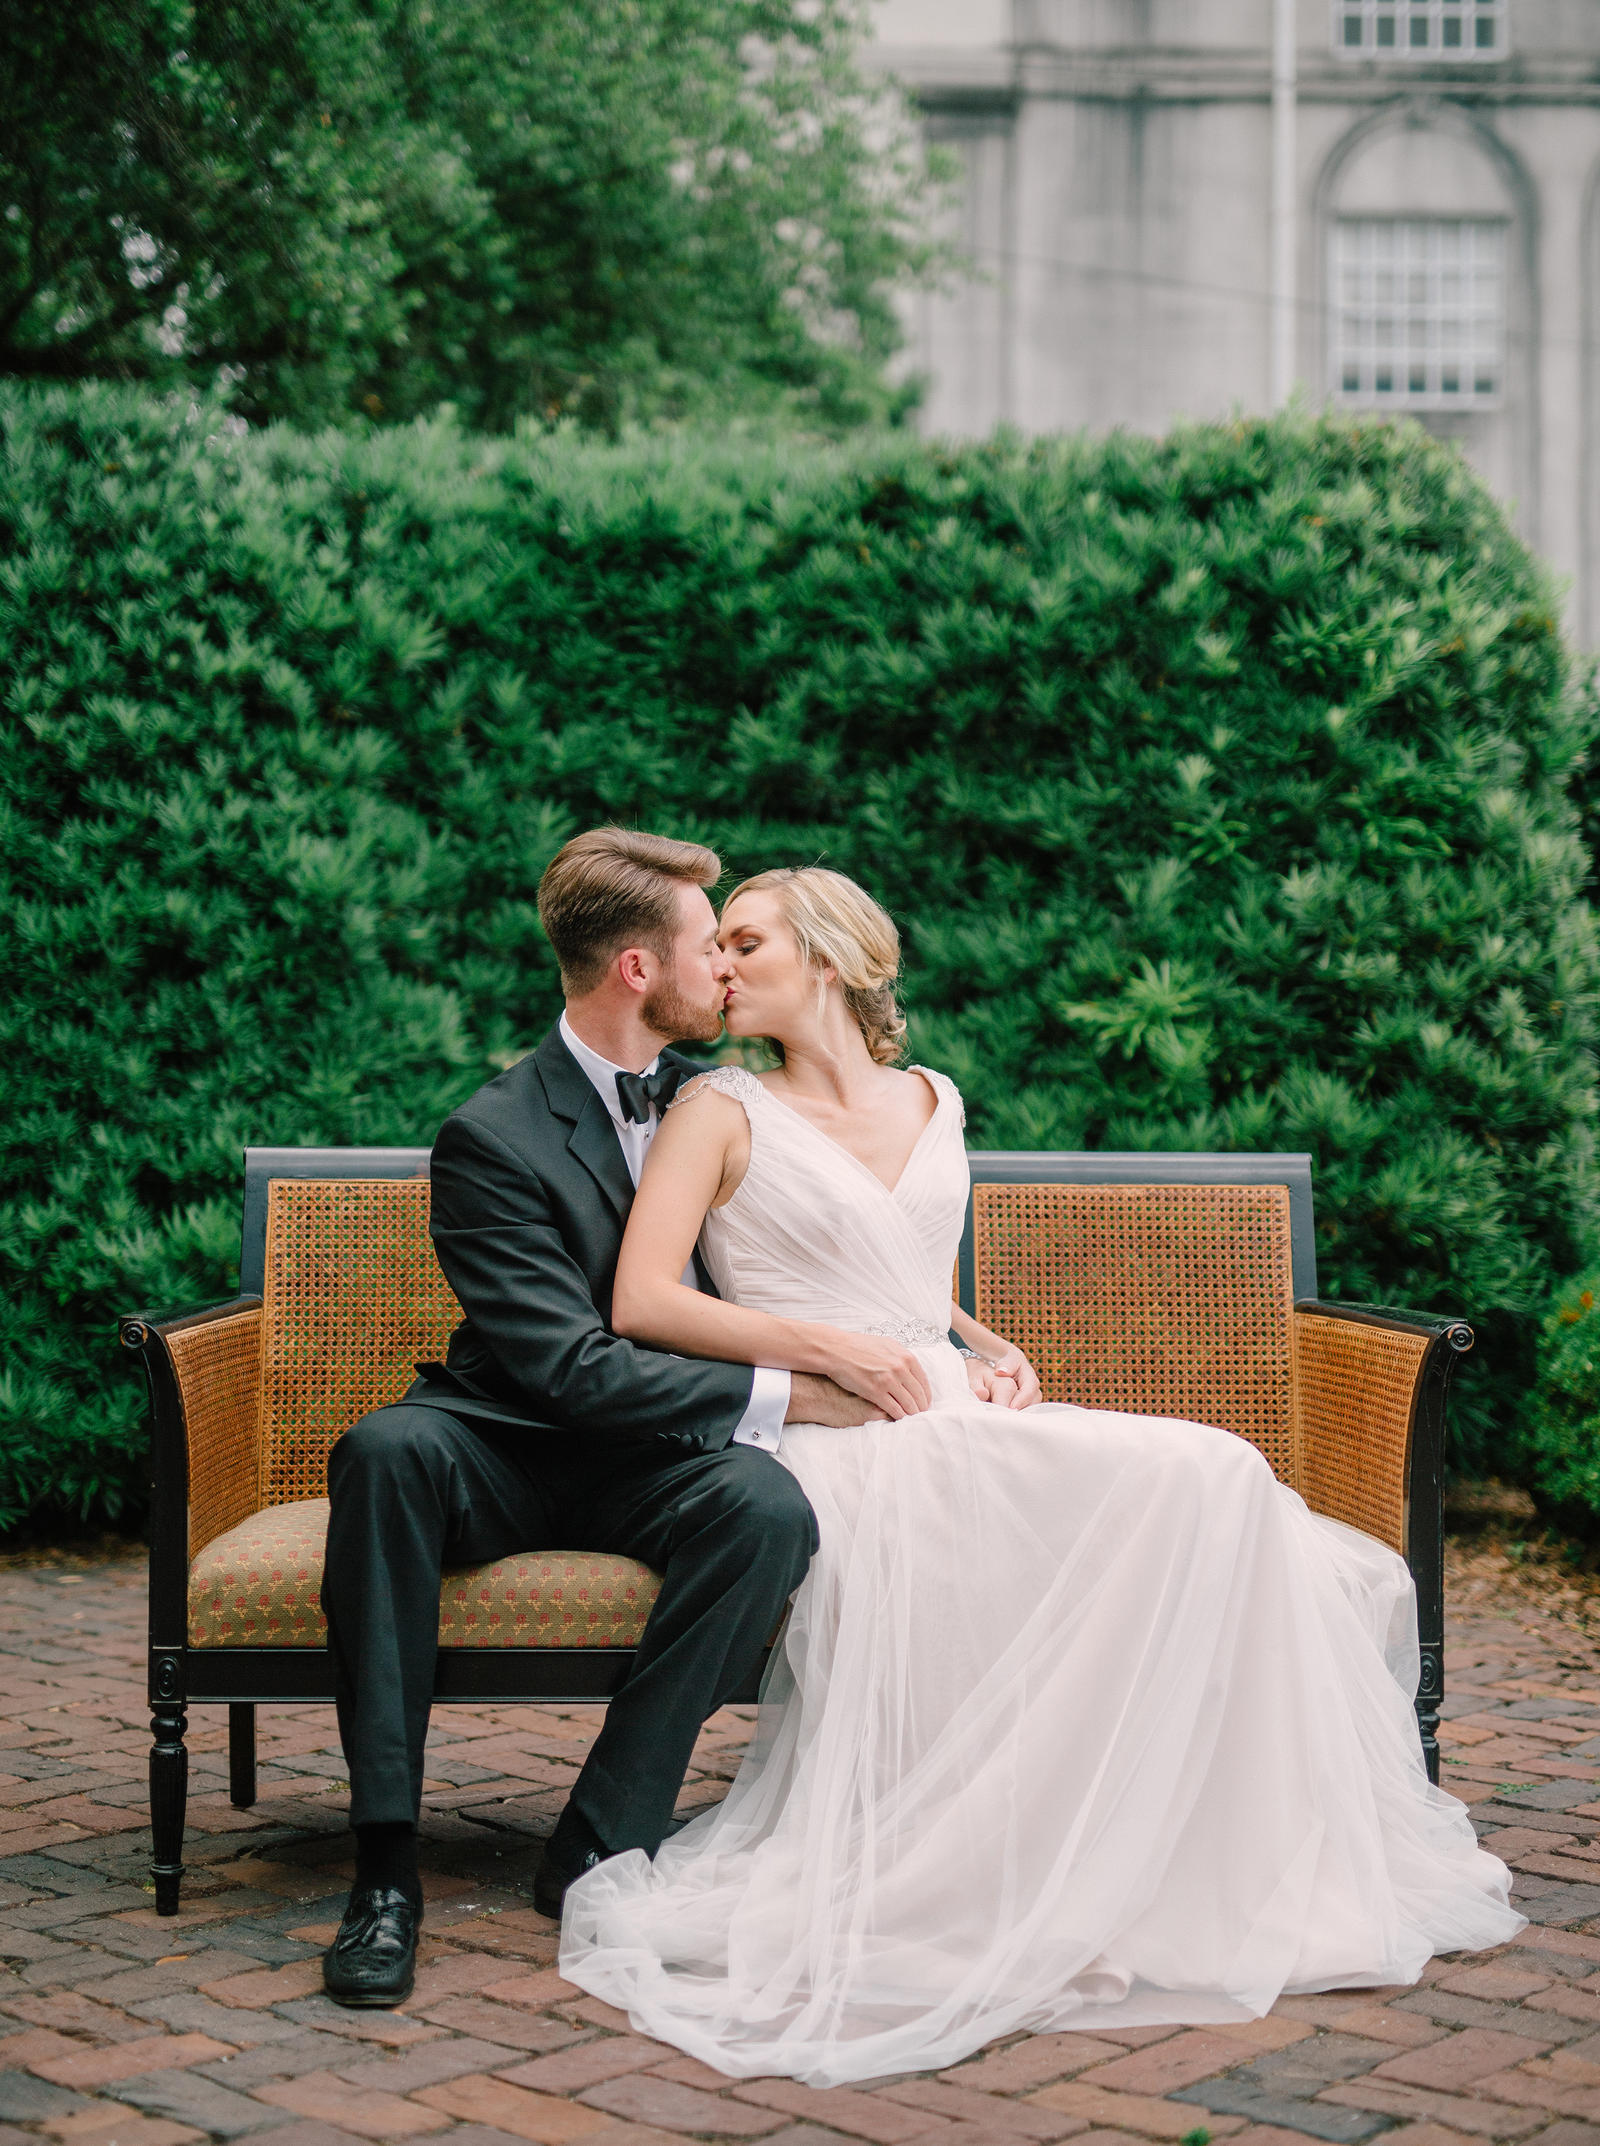 Editorial Photography | Atlanta, GA | A model bride and groom sit on a wicker bench in a courtyard, kissing.